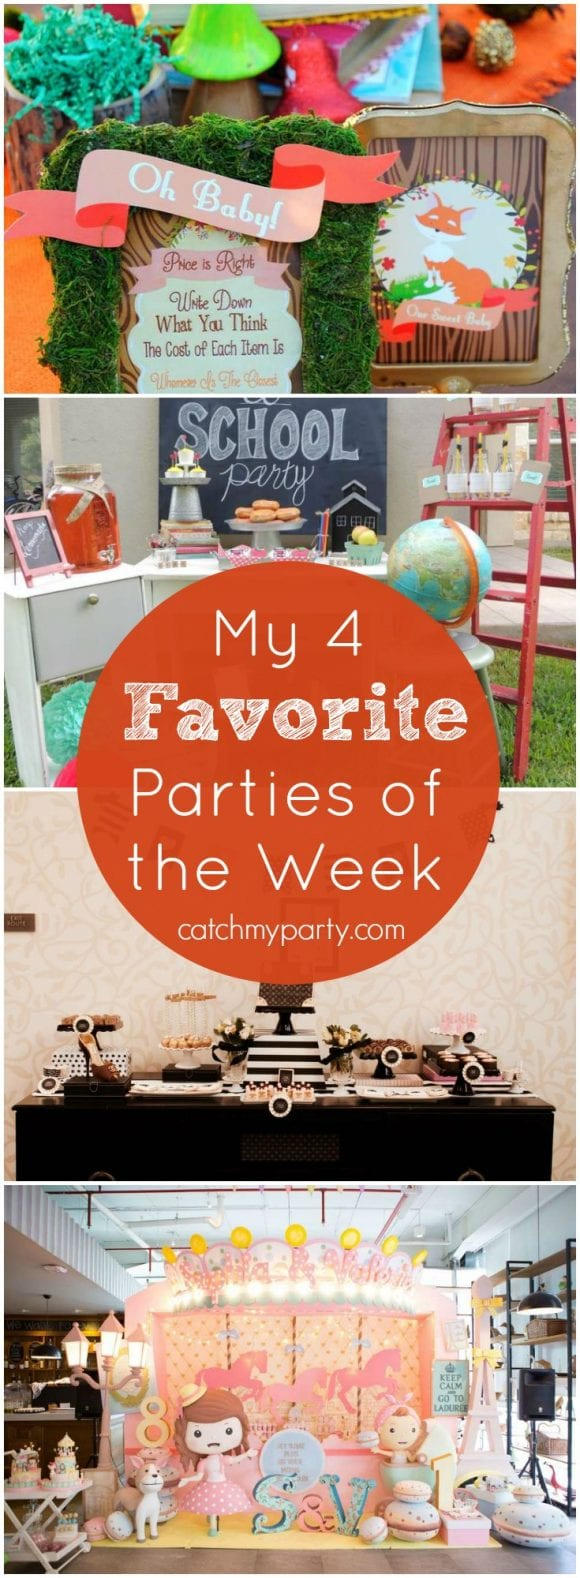 My favorite parties are a woodland baby shower, a back to school party, a stylish fashion party, and a French Paris party | Catchmyparty.com